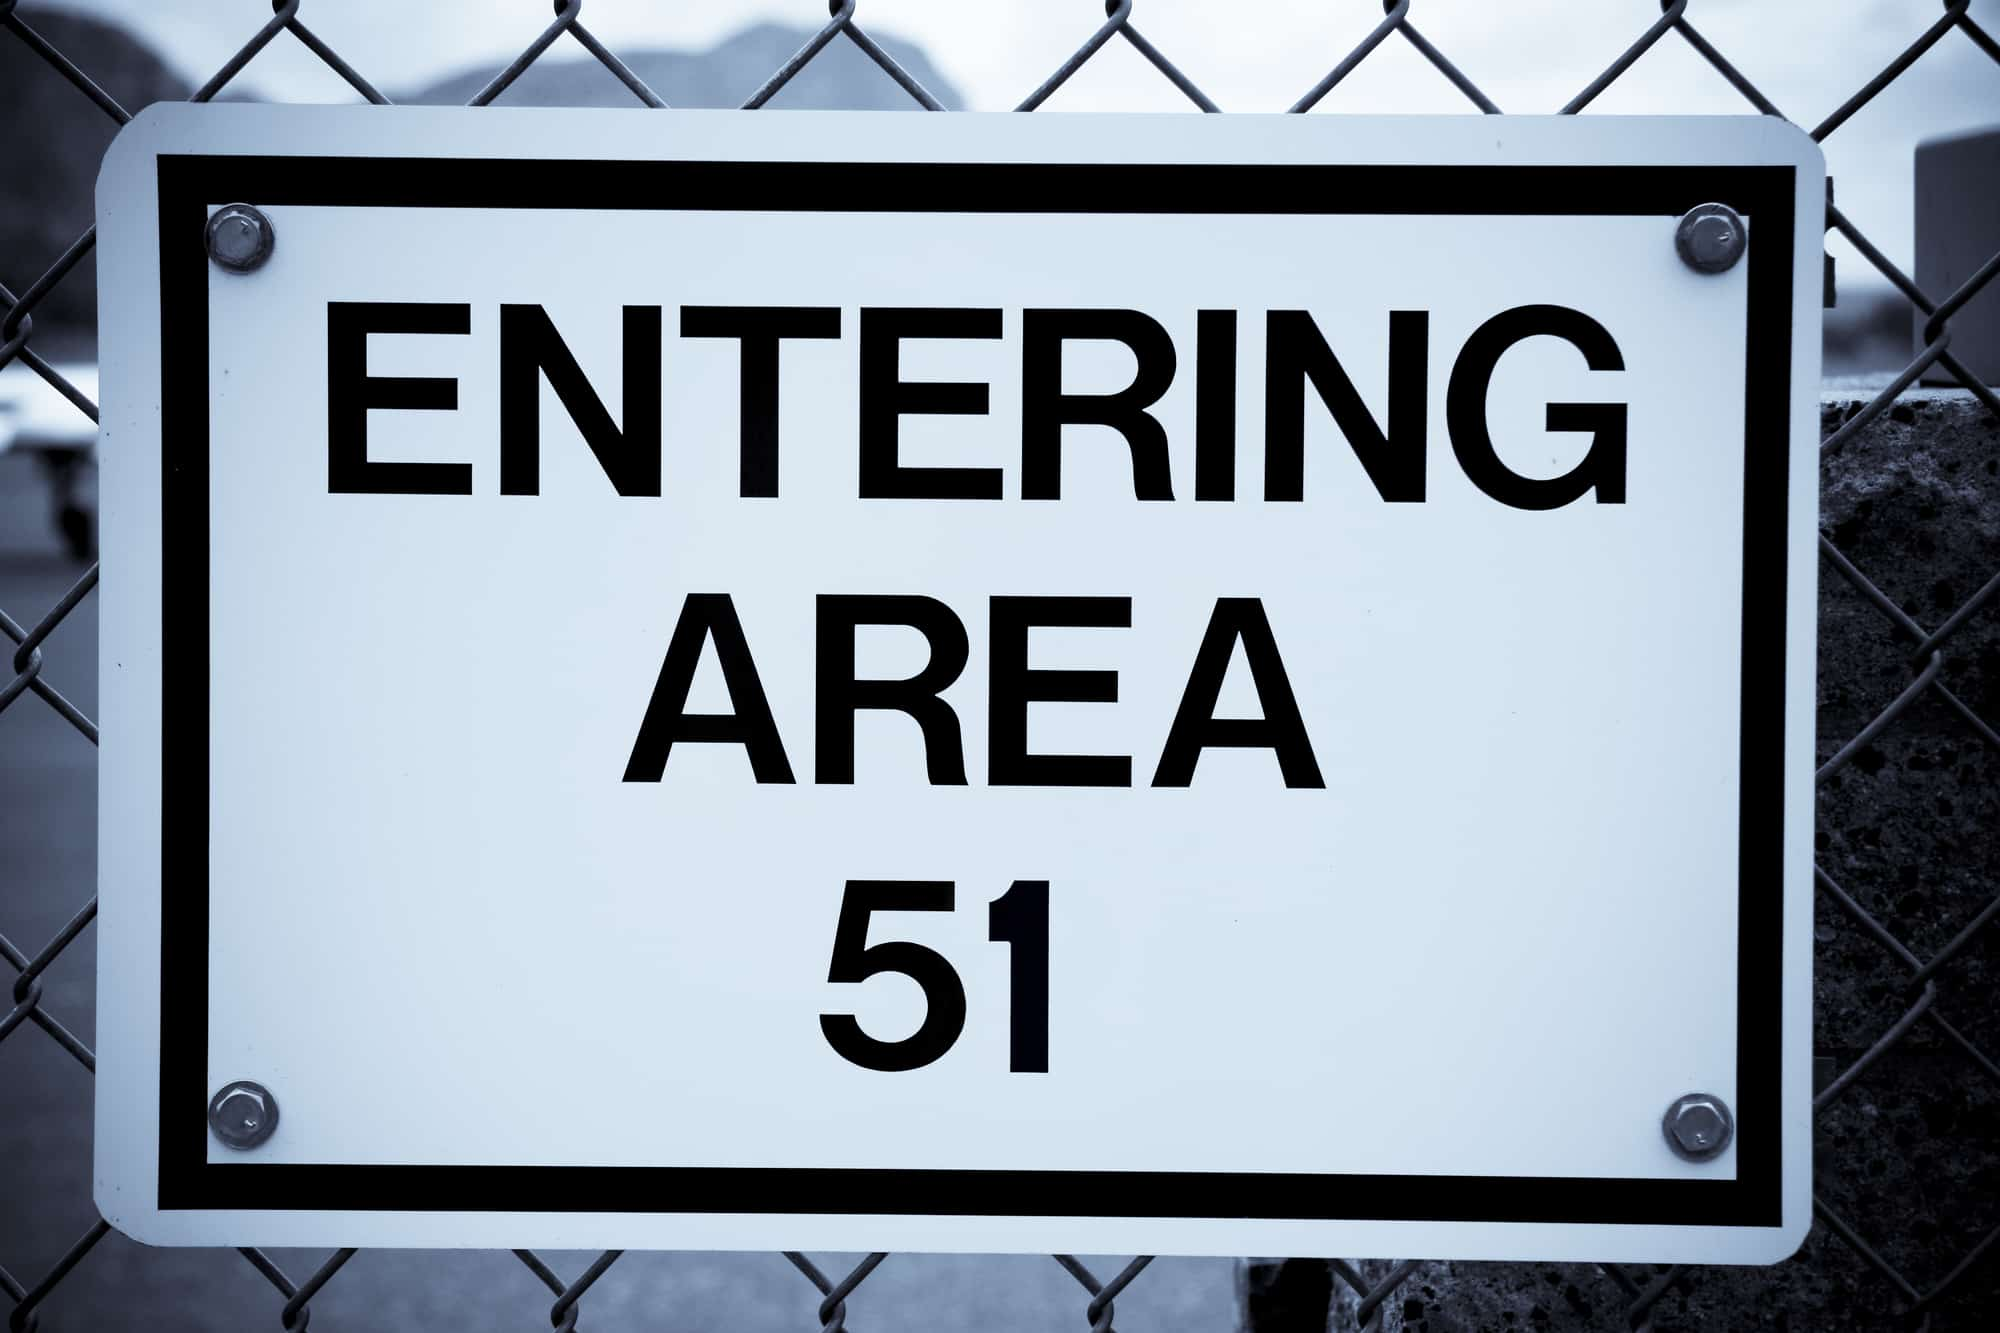 Sign on a chain link fence reading Entering area 51